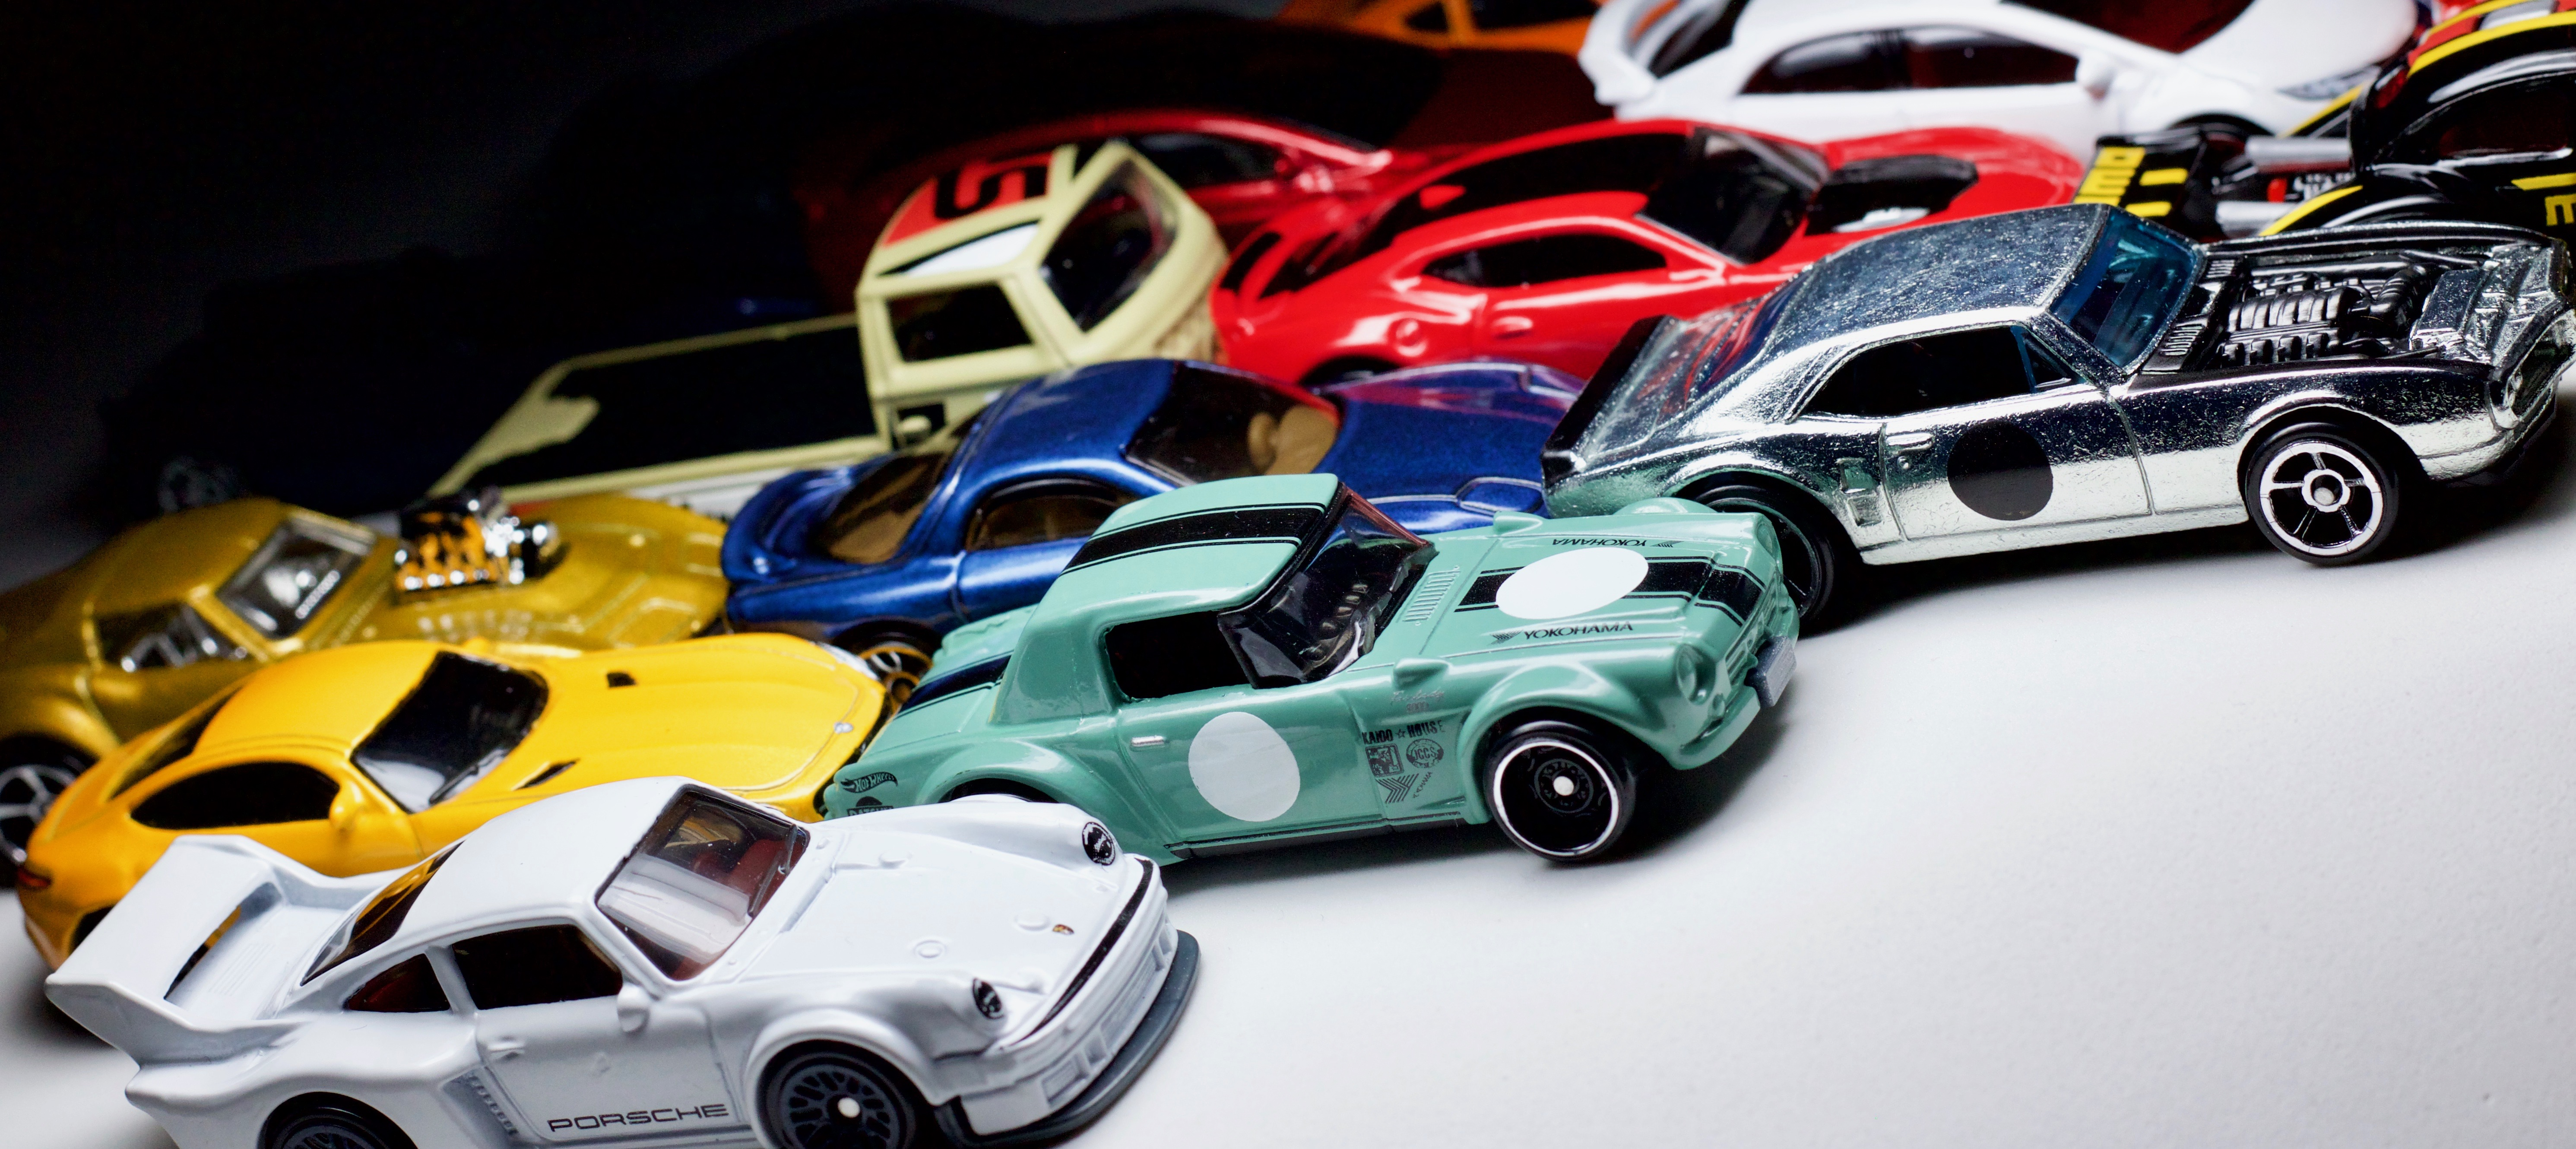 whats the best model of car